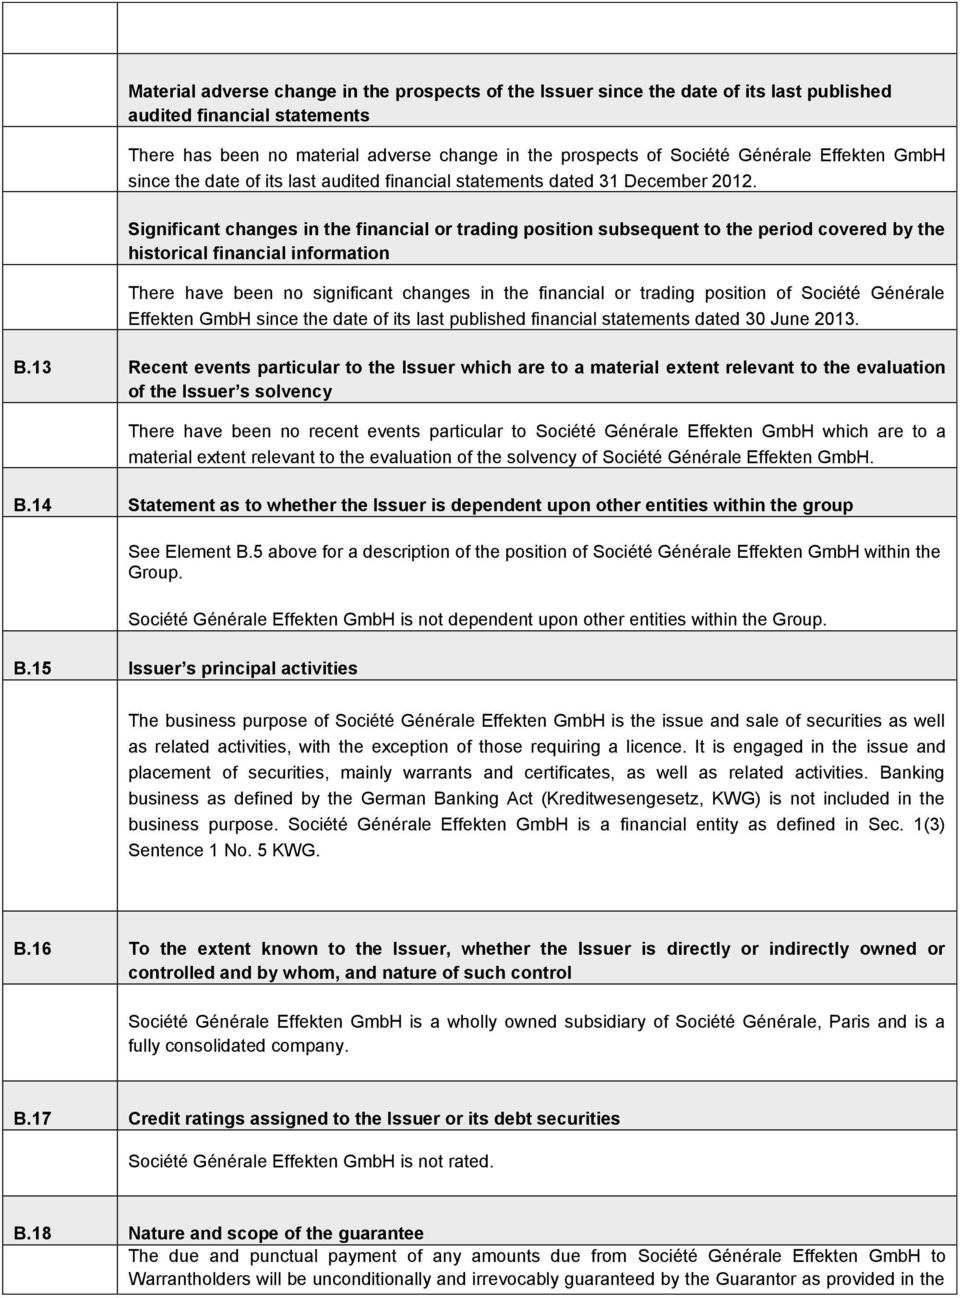 Significant changes in the financial or trading position subsequent to the period covered by the historical financial information There have been no significant changes in the financial or trading